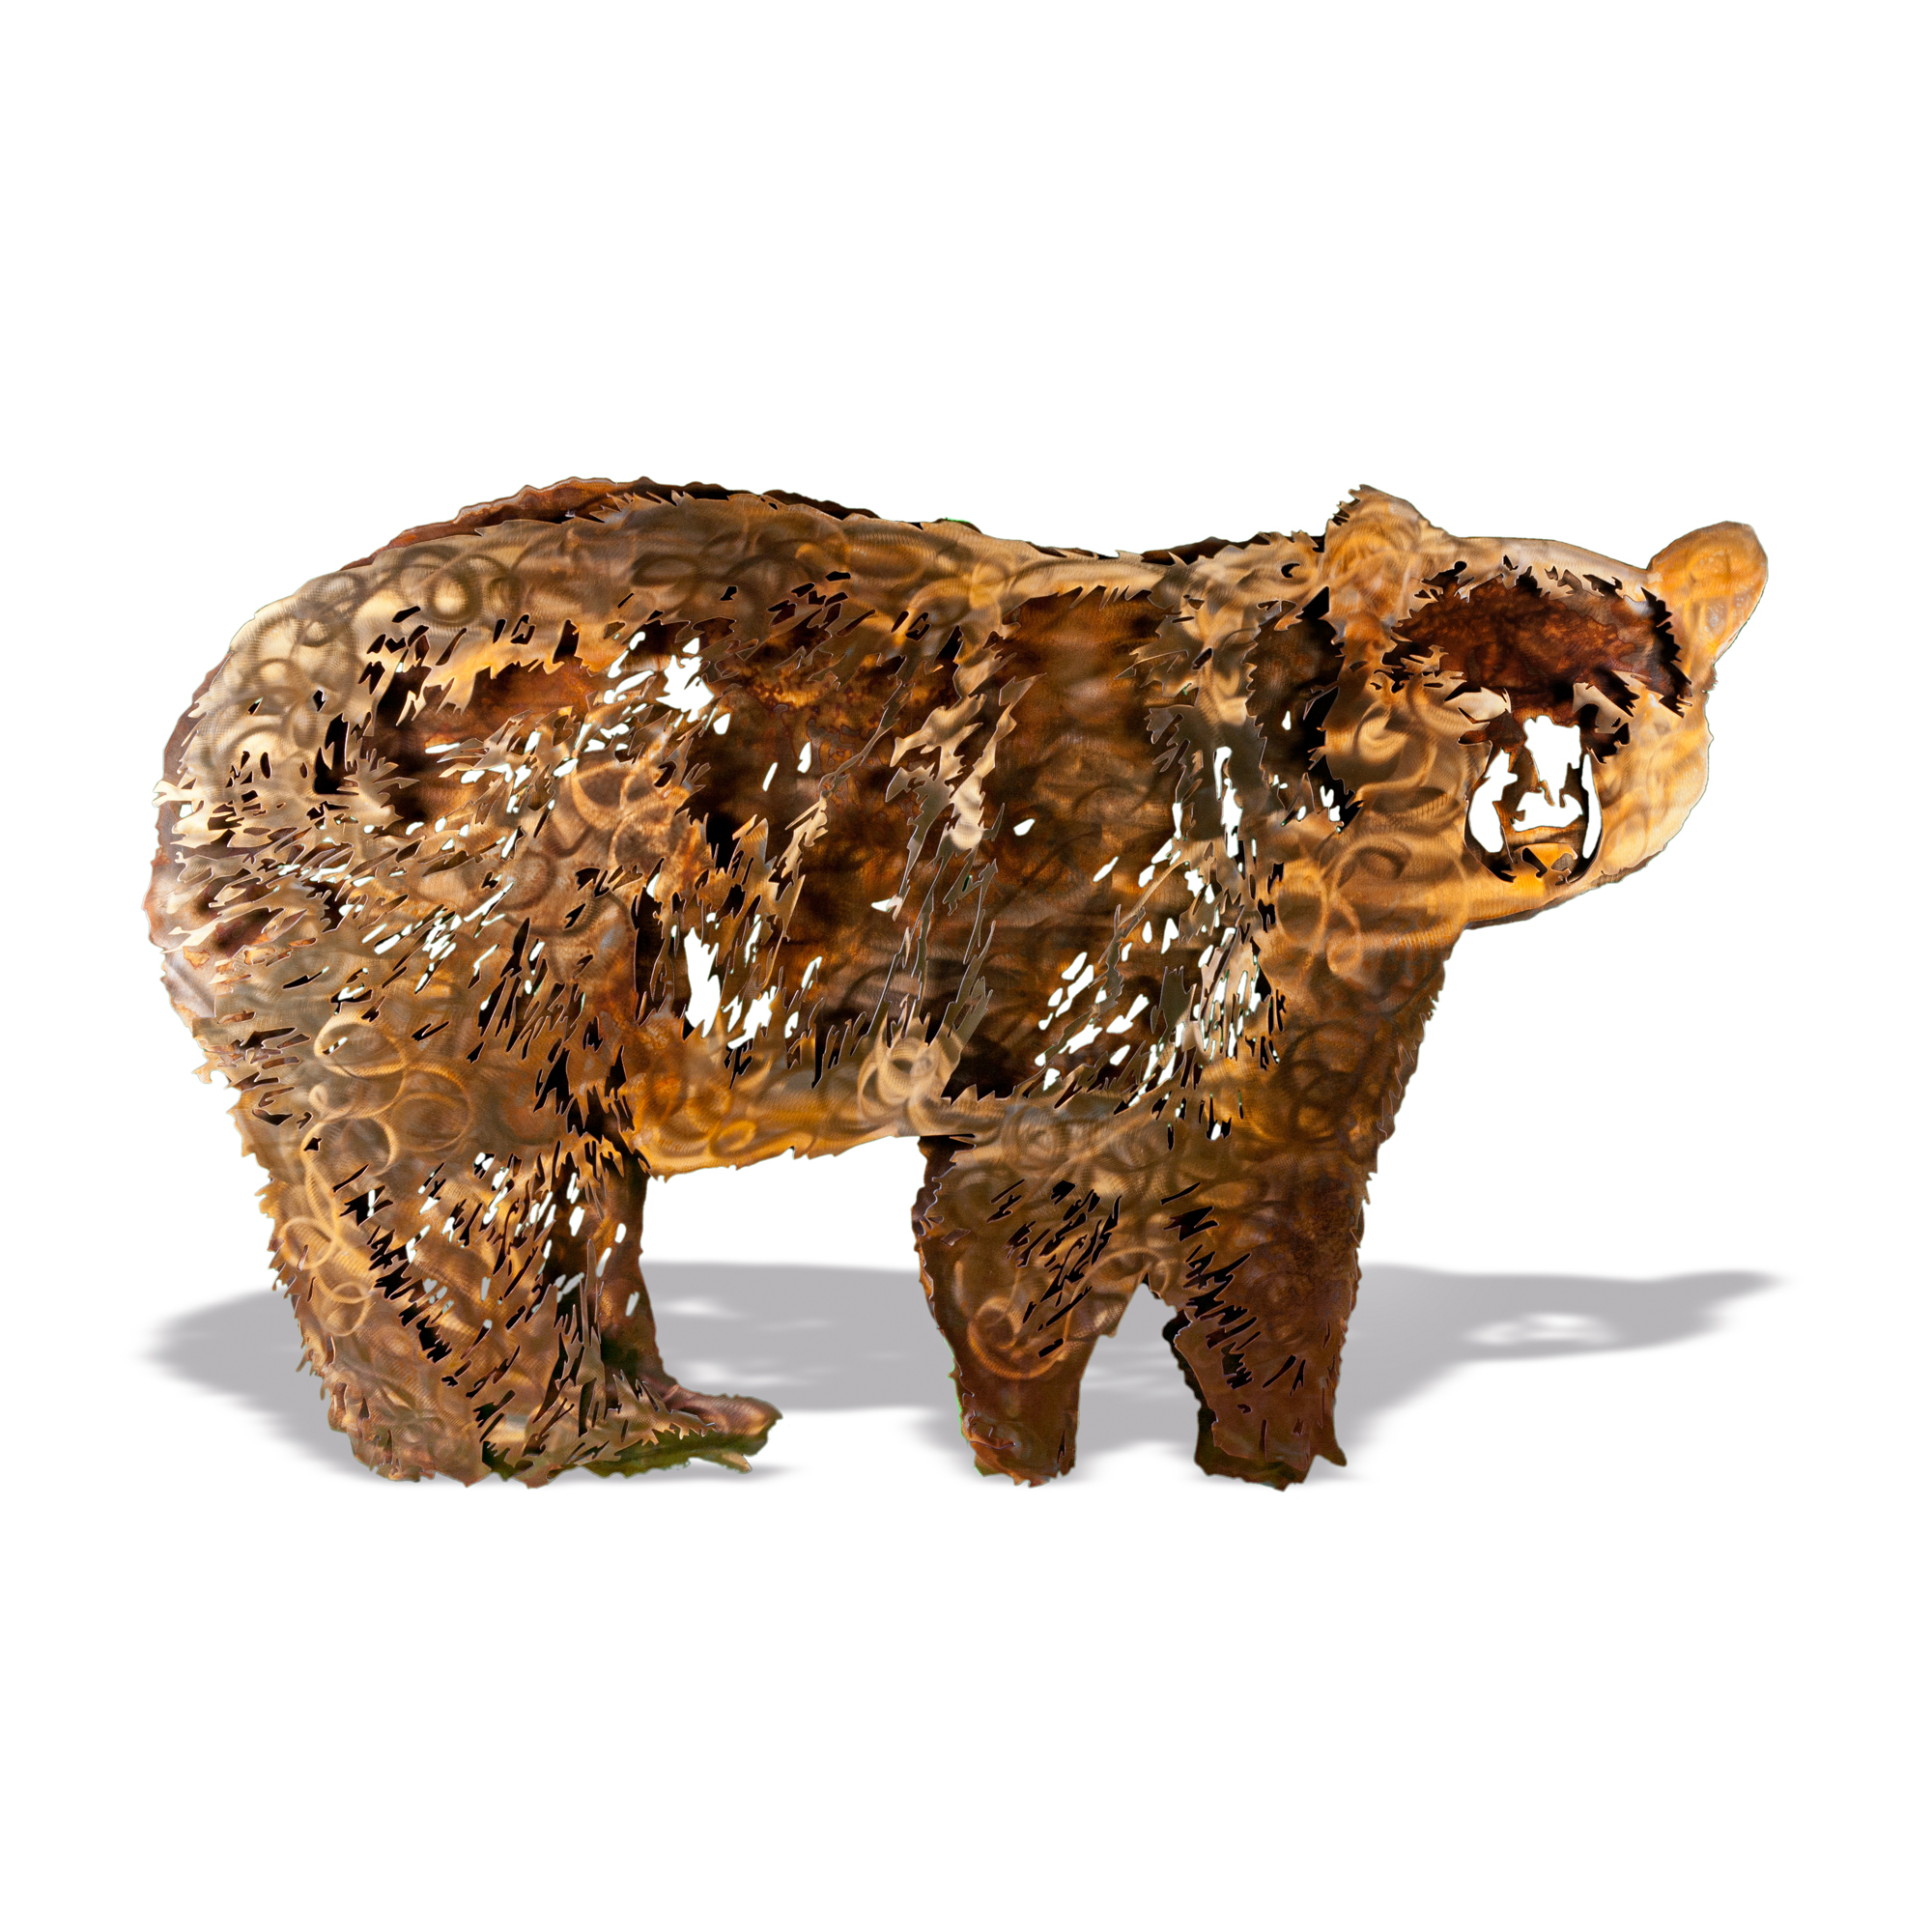 Adult Black Bear - Contemporary Large Stake Metal Artwork with Brown Patina Finish Form